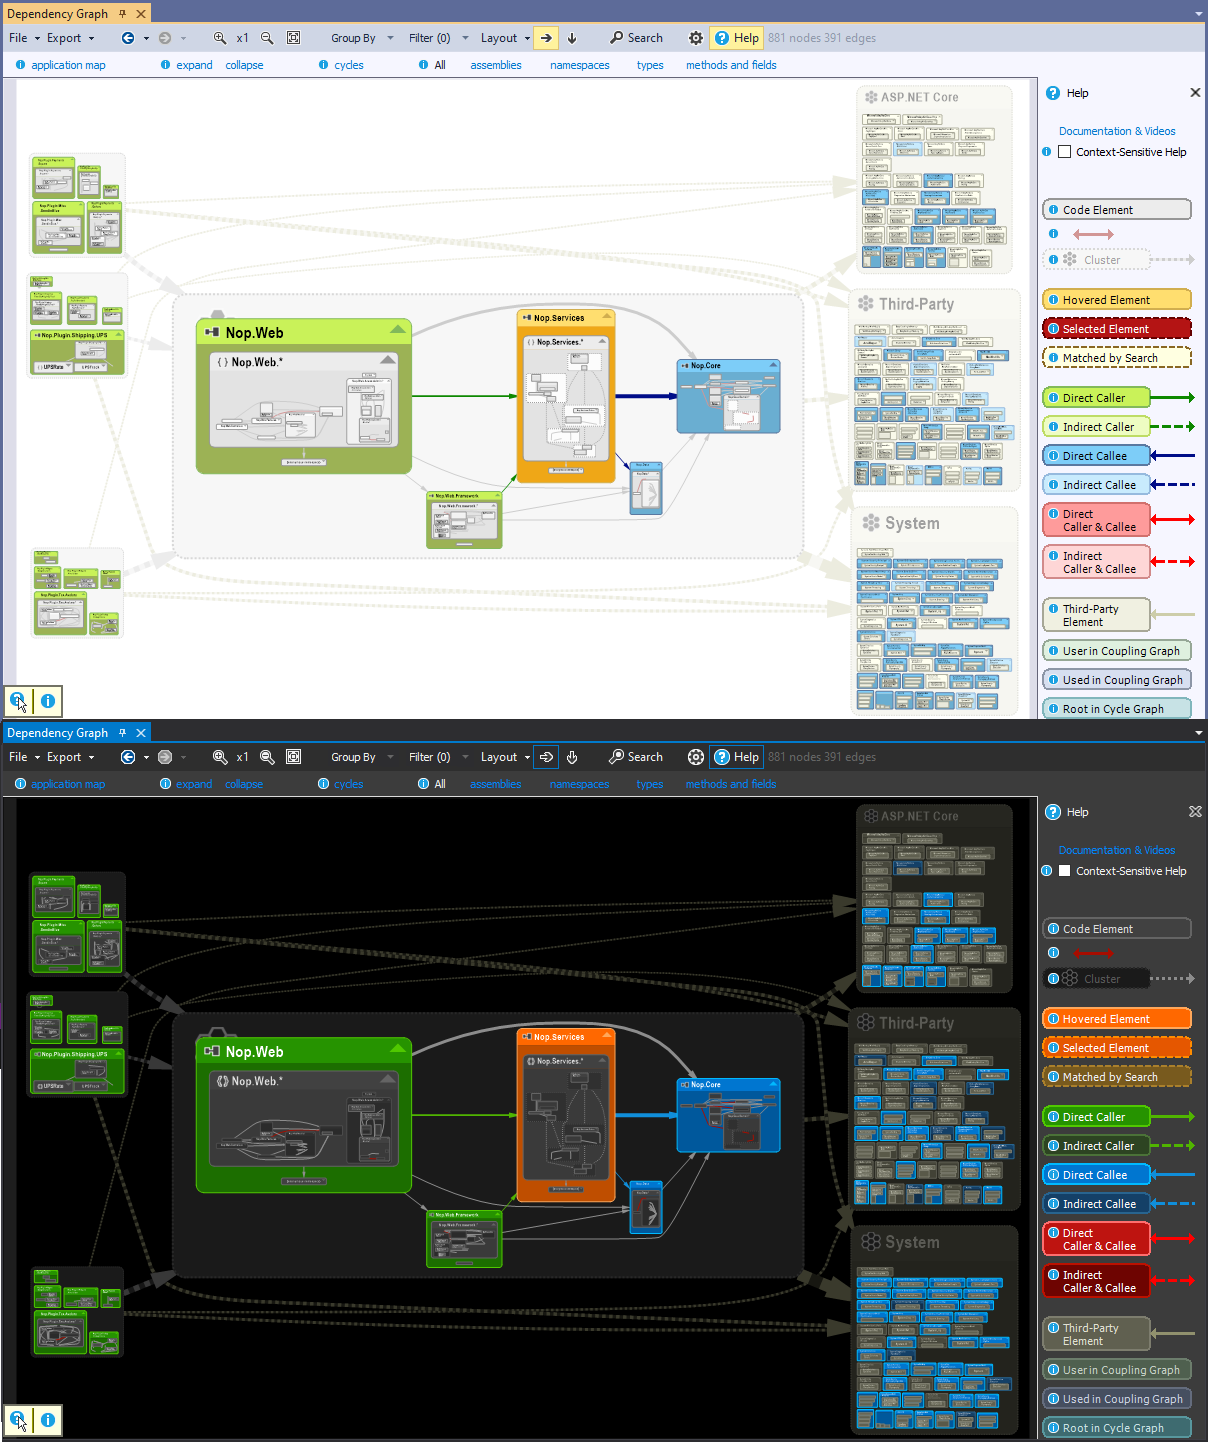 NDepend Dependency Graph support for Dark Theme